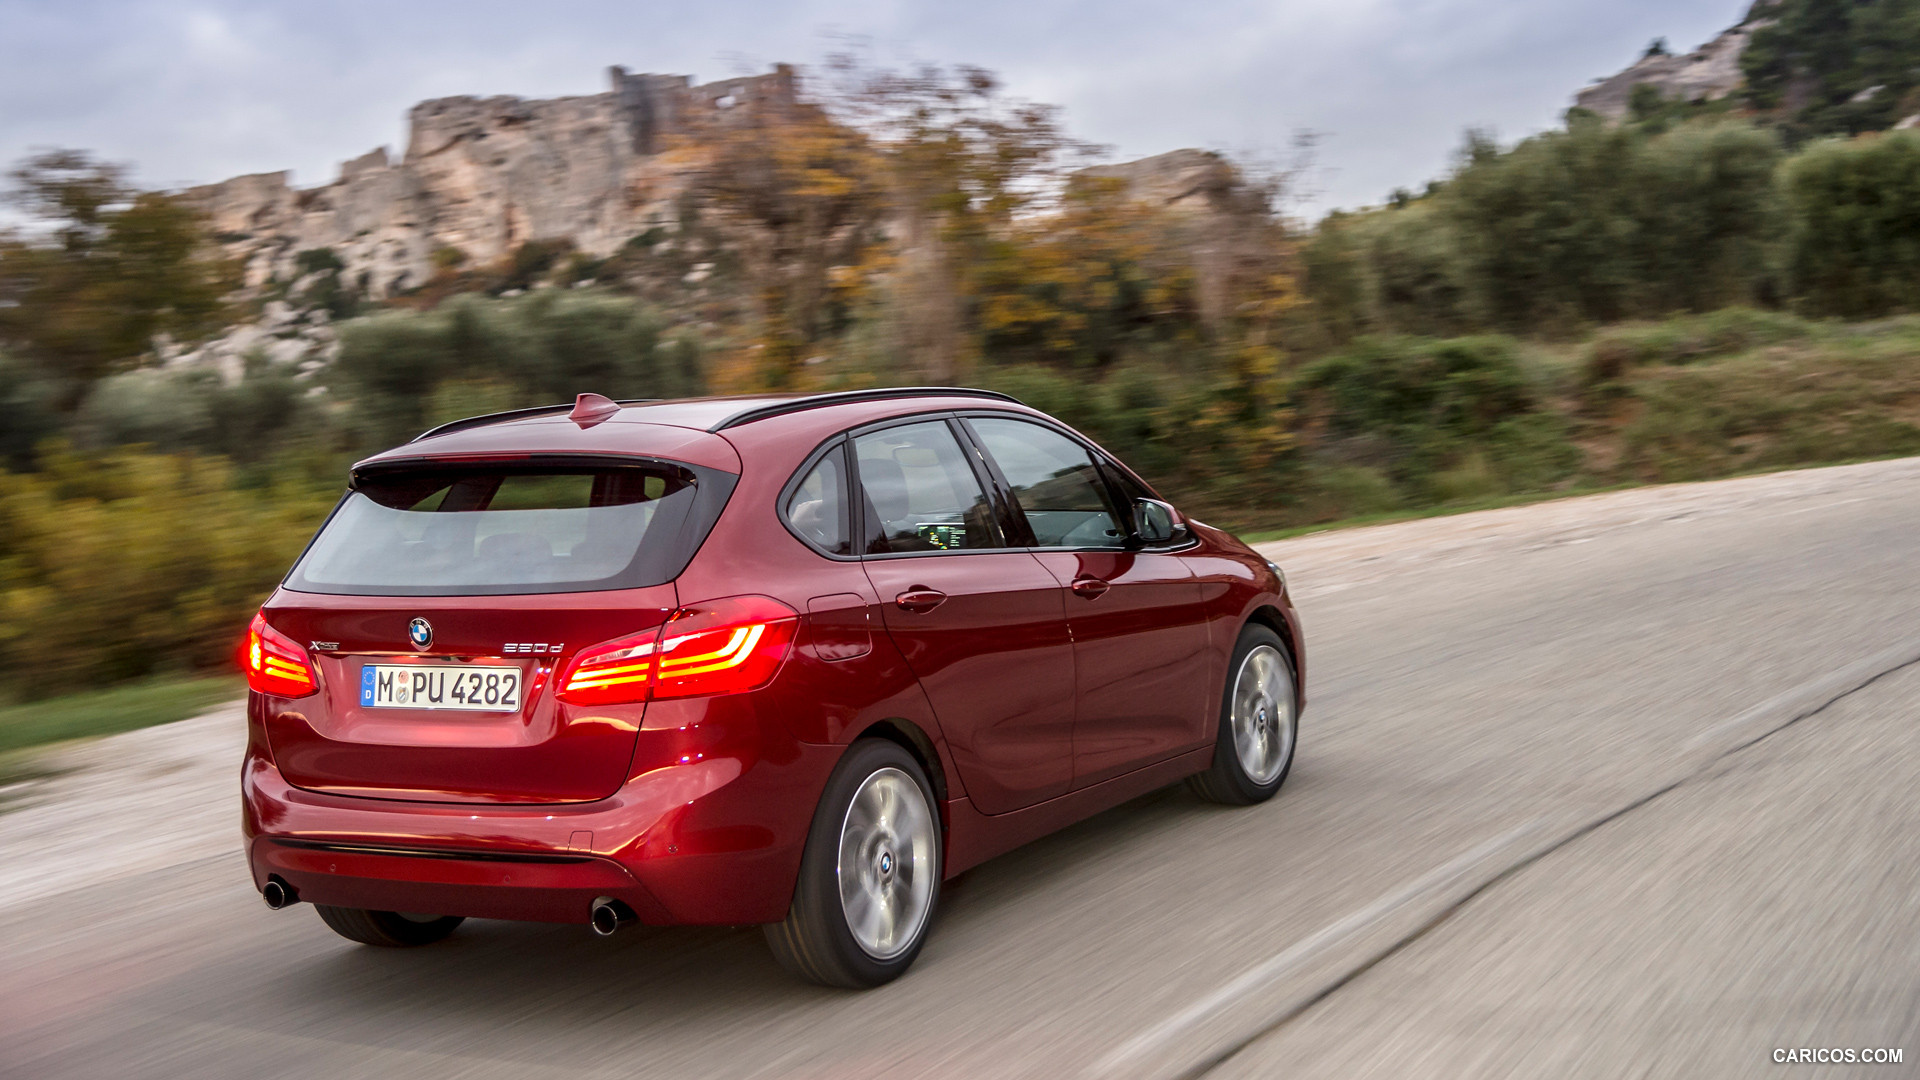 bmw 2 series active tourer xdrive picture 134187 bmw photo gallery. Black Bedroom Furniture Sets. Home Design Ideas